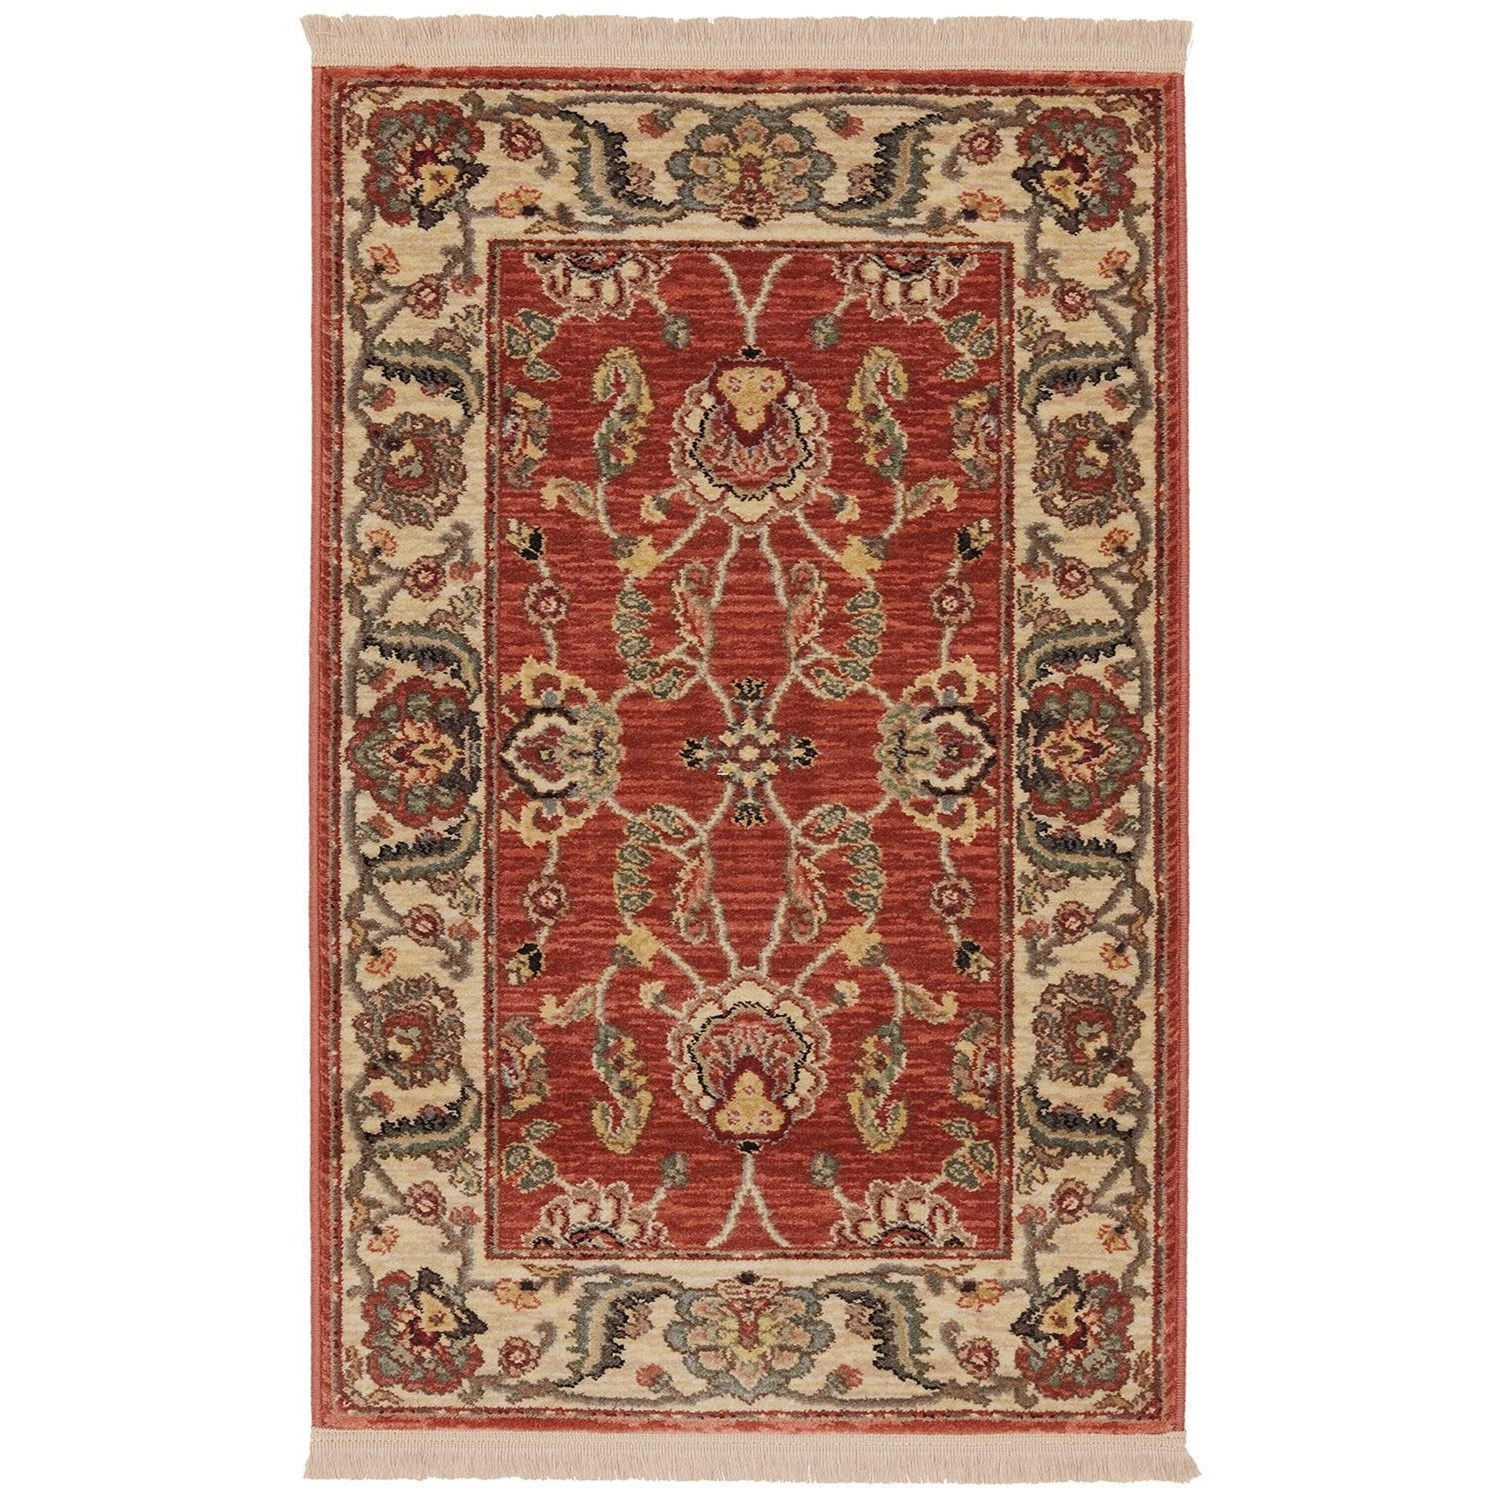 10'x14' Agra Red Rug